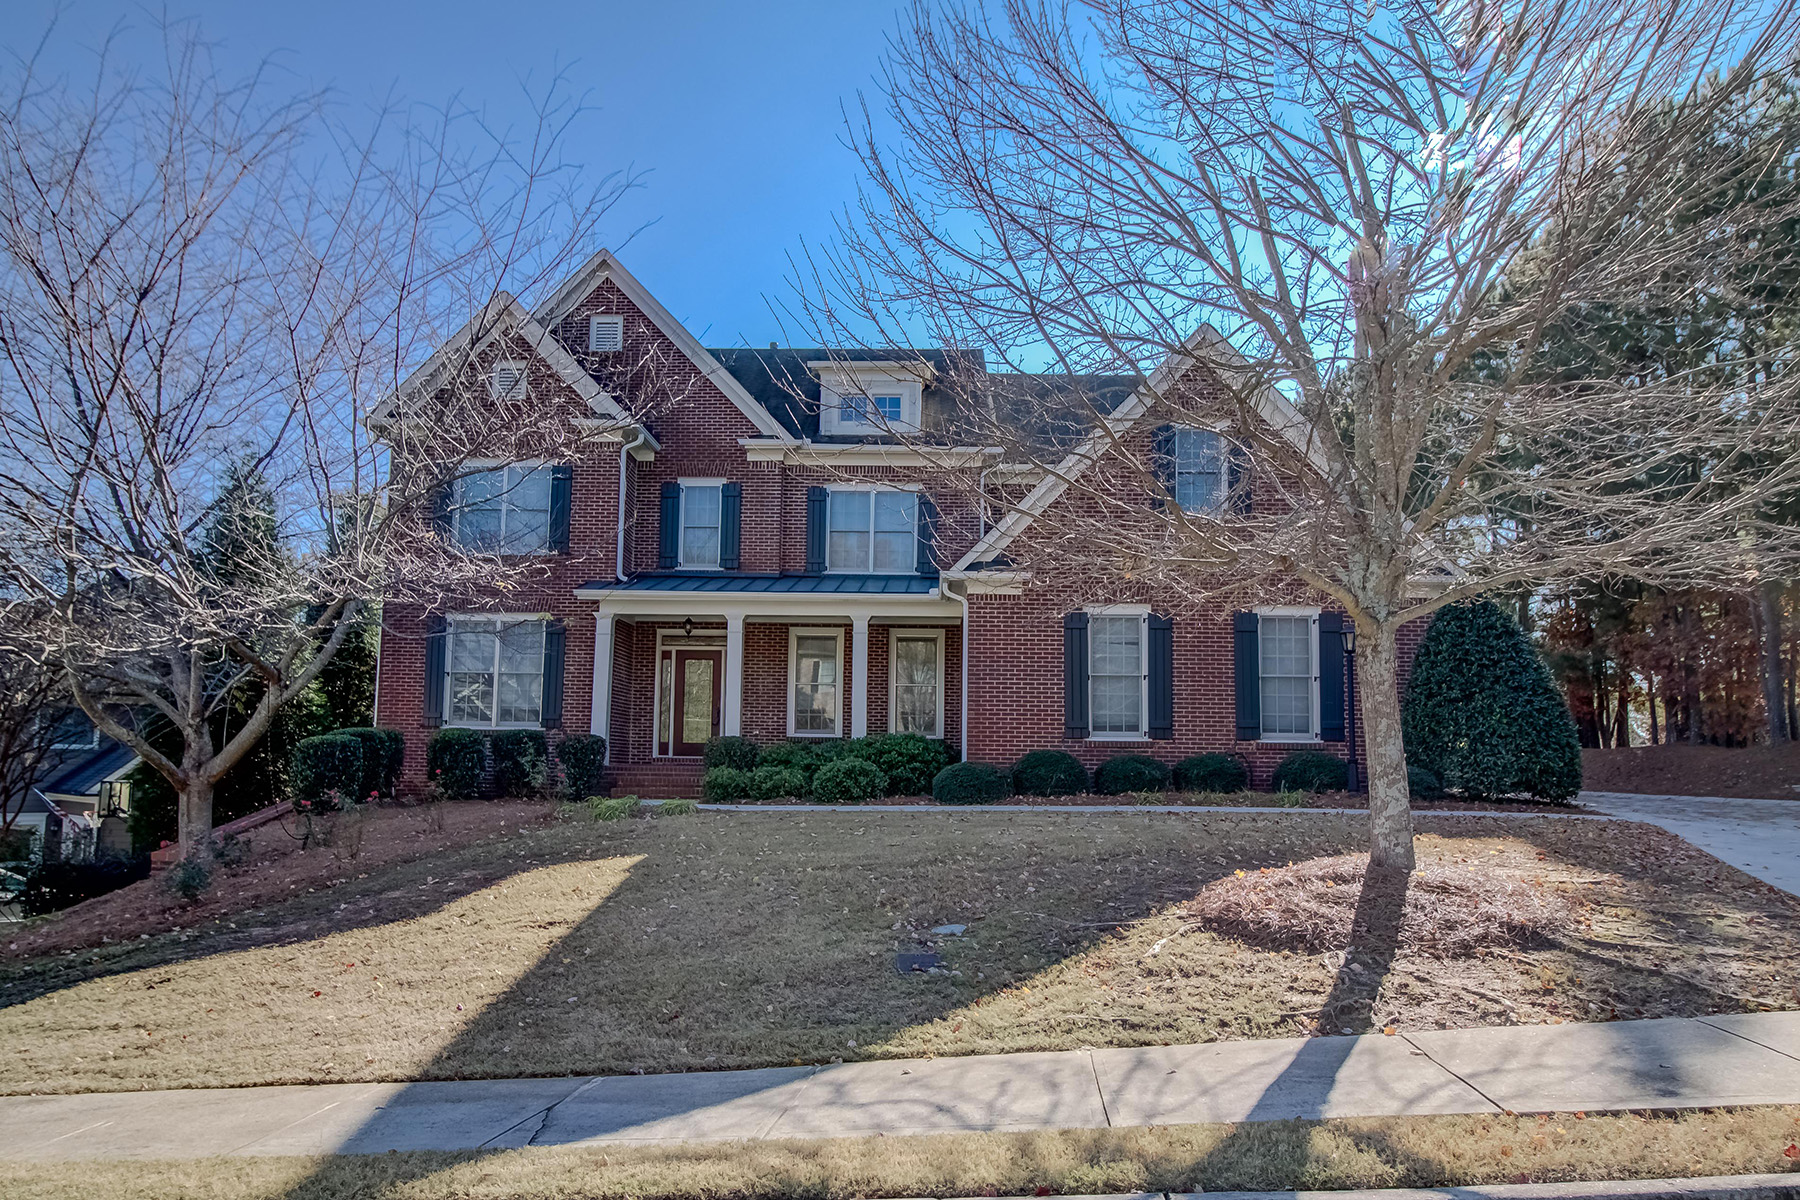 Single Family Home for Sale at Beautiful Family Home On Corner Lot In A Quiet Neighborhood 3585 Glenaireview Court Dacula, Georgia 30019 United States